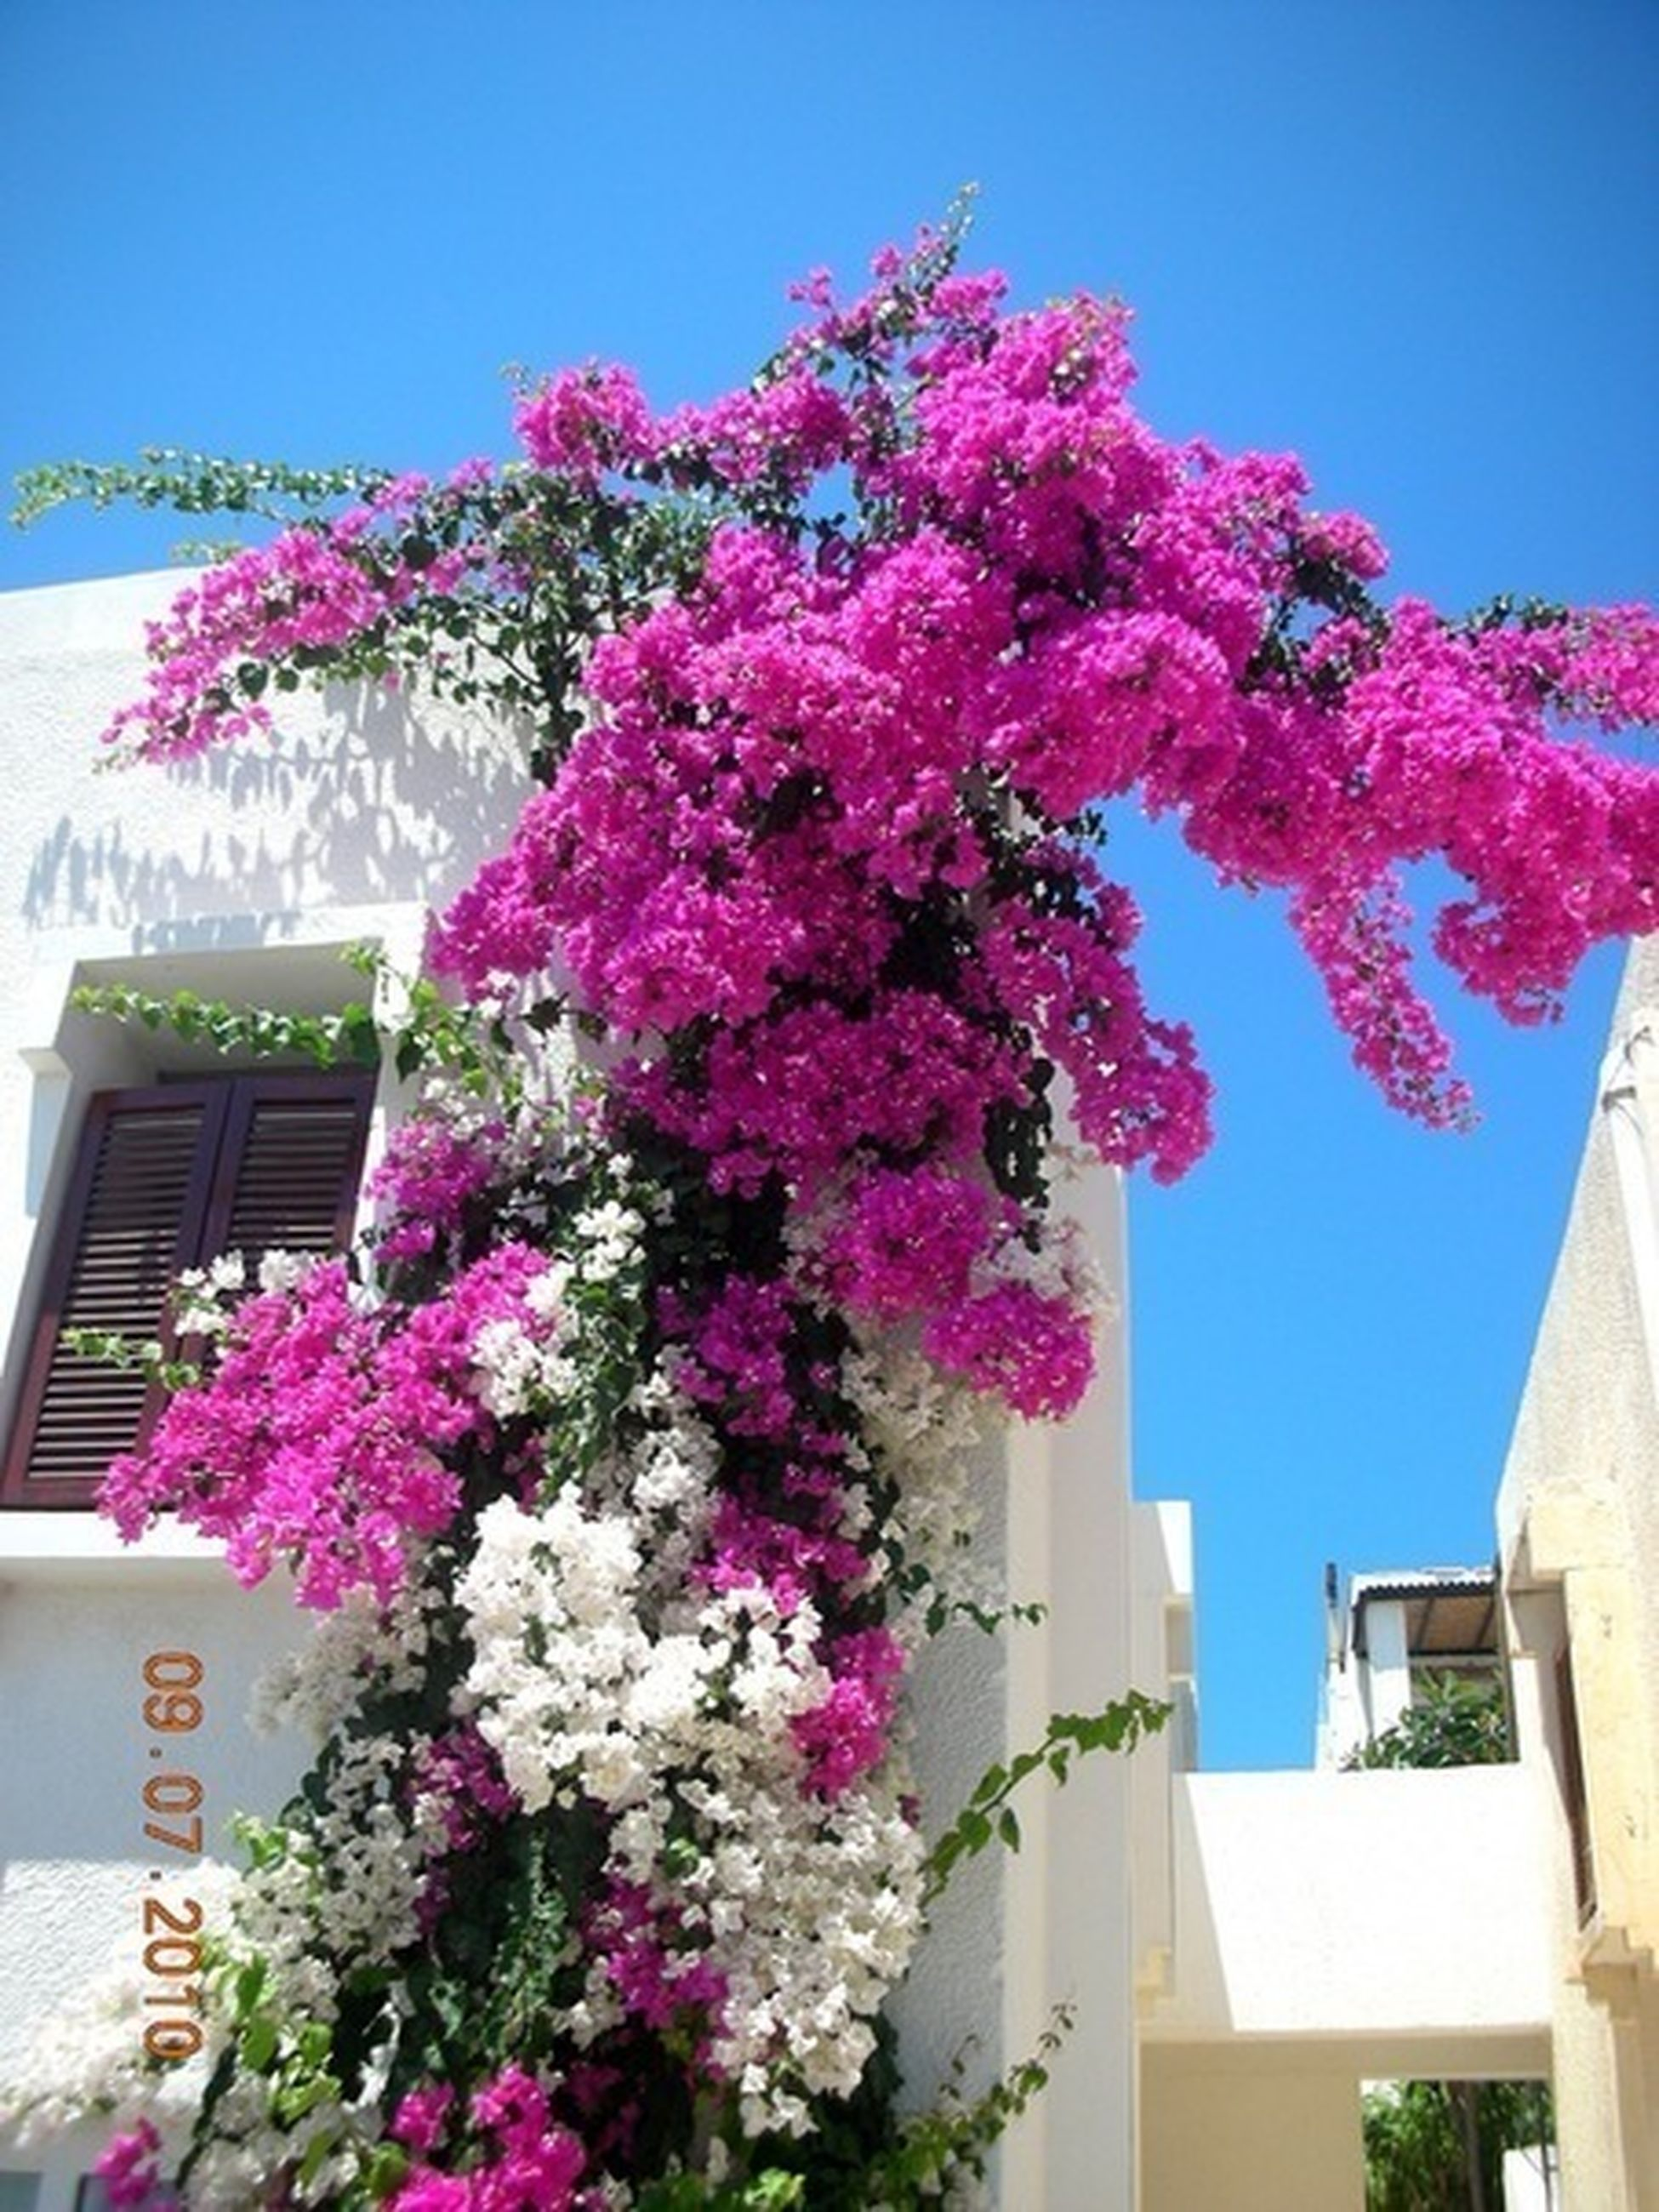 flower, building exterior, architecture, built structure, clear sky, low angle view, freshness, growth, fragility, pink color, blue, blossom, building, tree, nature, branch, blooming, window, day, plant